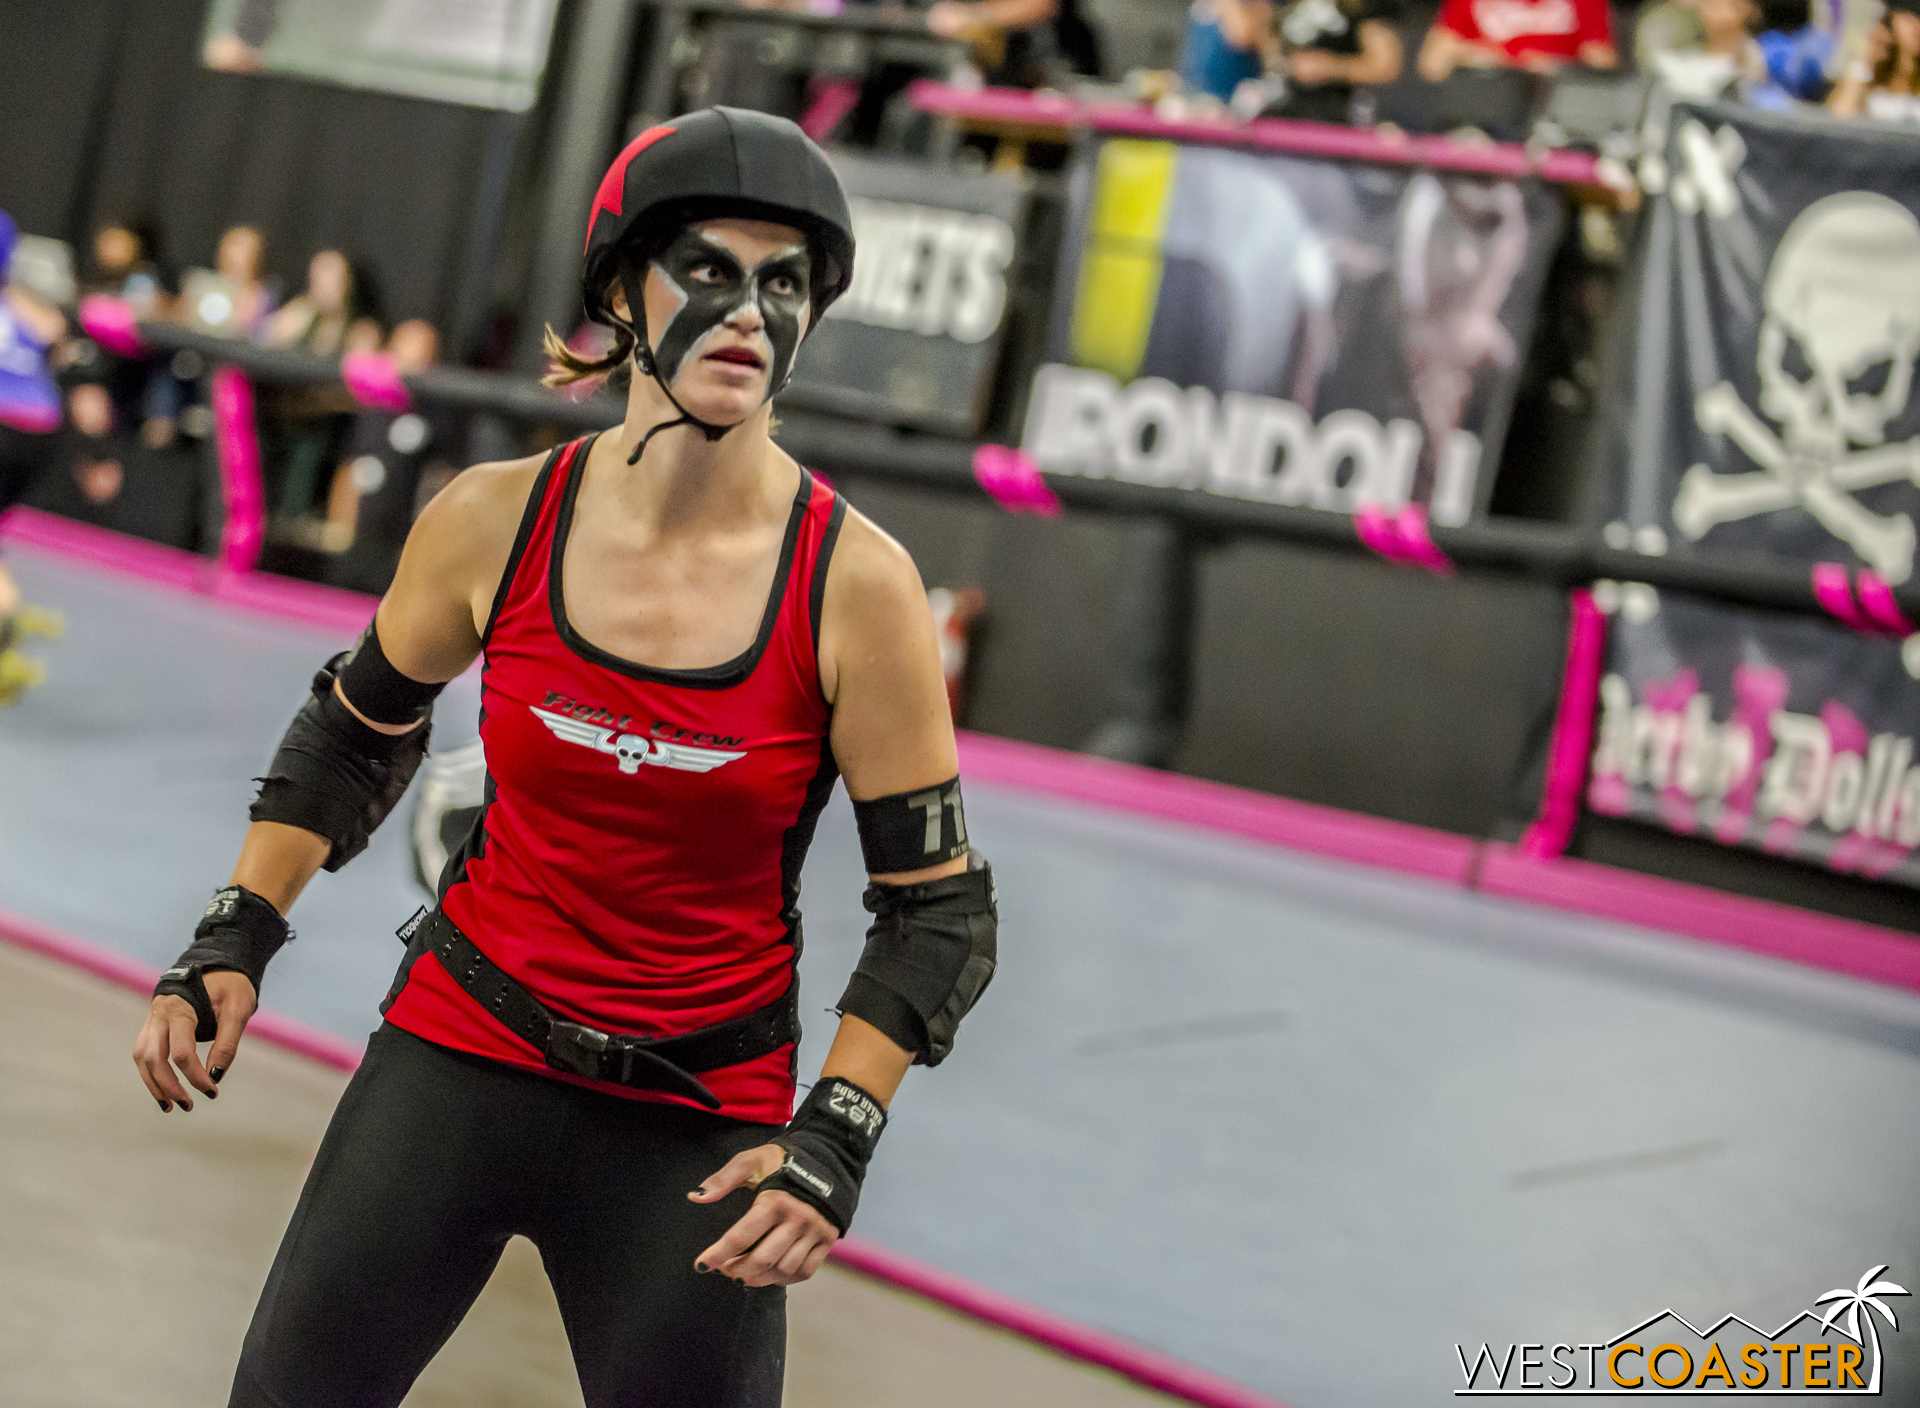 Fight Crew captain Remix to Submission strikes a menacing presence.